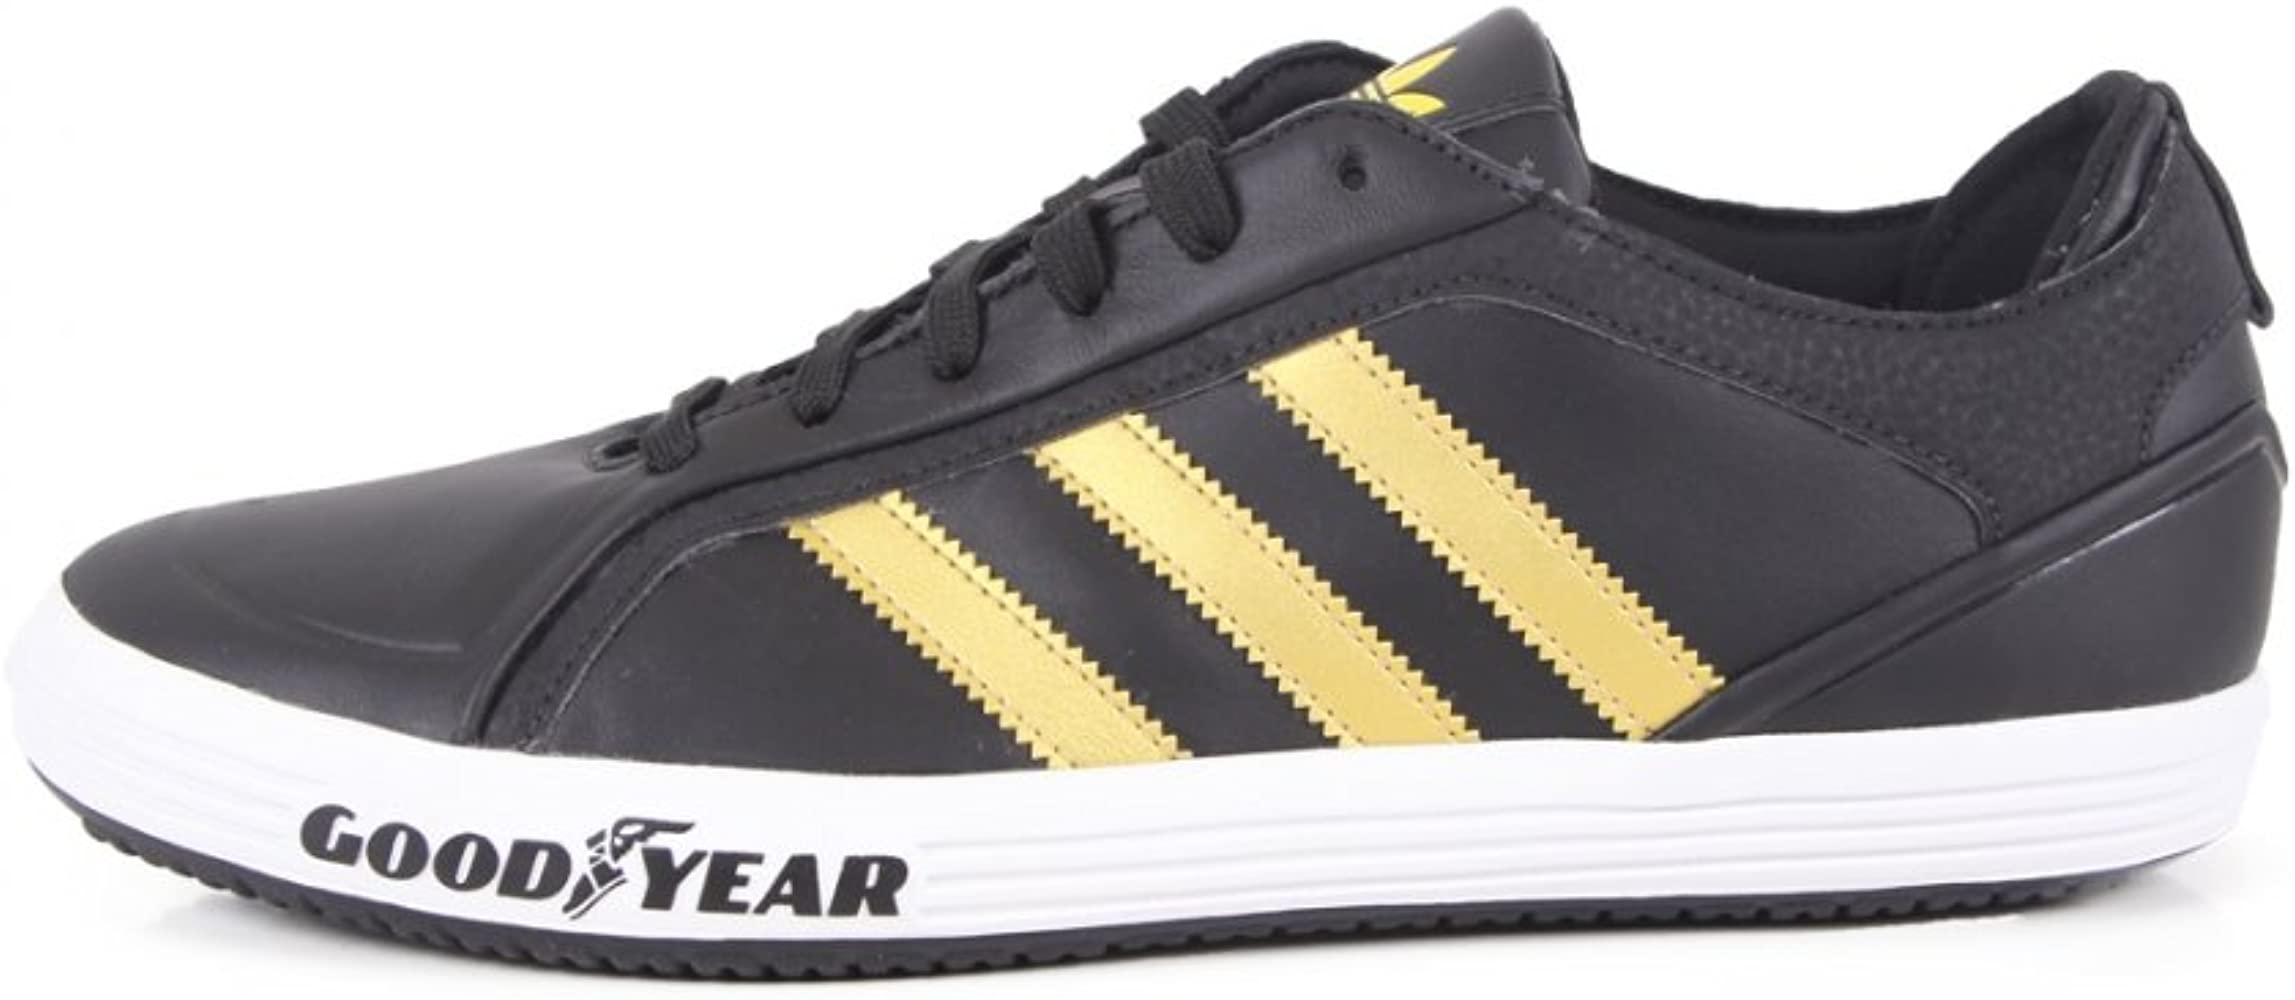 adidas Goodyear Driver Vulc V24406, Baskets Mode Homme